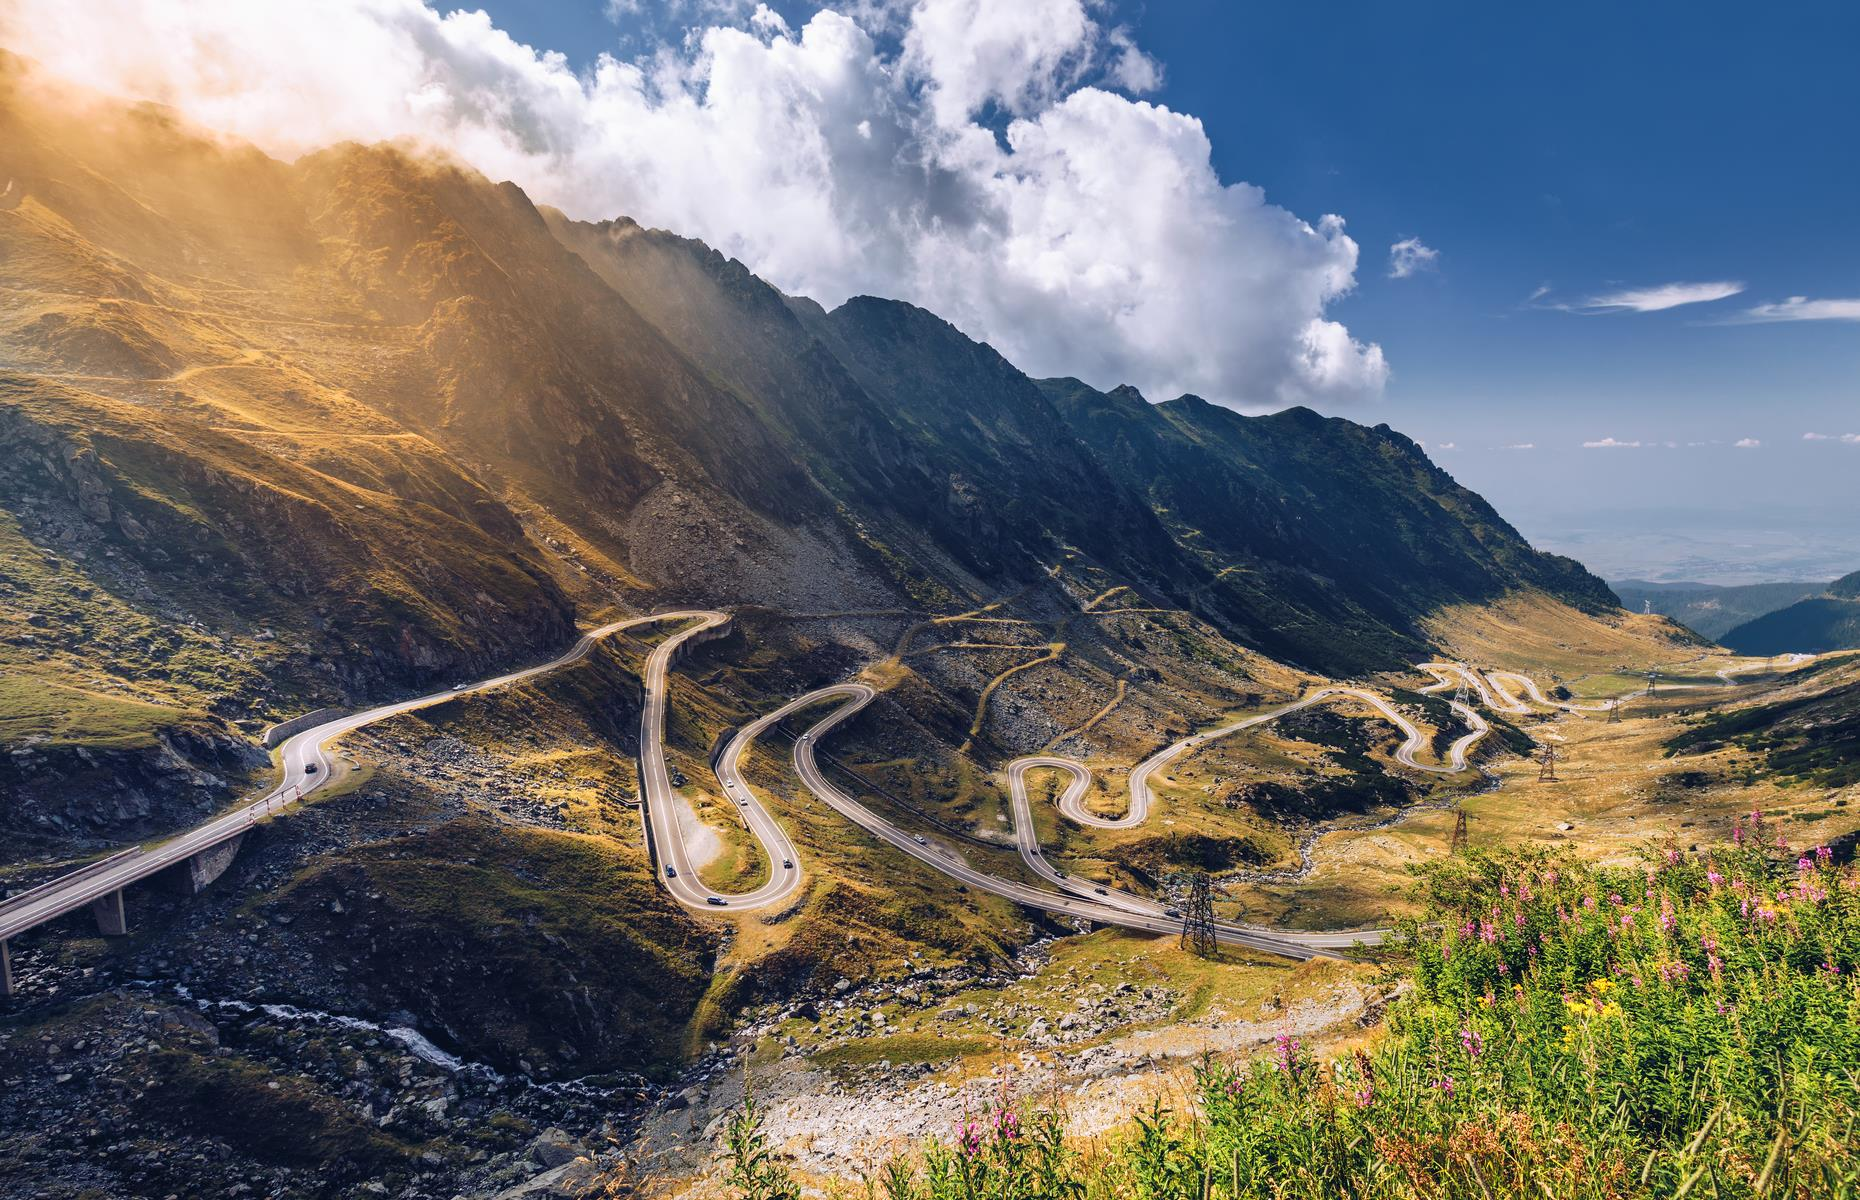 Slide 2 of 44: This beauty of a road is one of Europe's most majestic mountain routes. The Transfagarasan begins in Cartisoara and ends in Curtea de Arges across Romania's beautiful Fagaras Mountains, also known as the Transylvanian Alps. It was built for military purposes in the 1970s to connect the provinces of Transylvania and Wallachia. Its 6,699 feet (2,041m) at its highest point and has a seemingly endless series of bends, tunnels and viaducts to keep drivers alert.